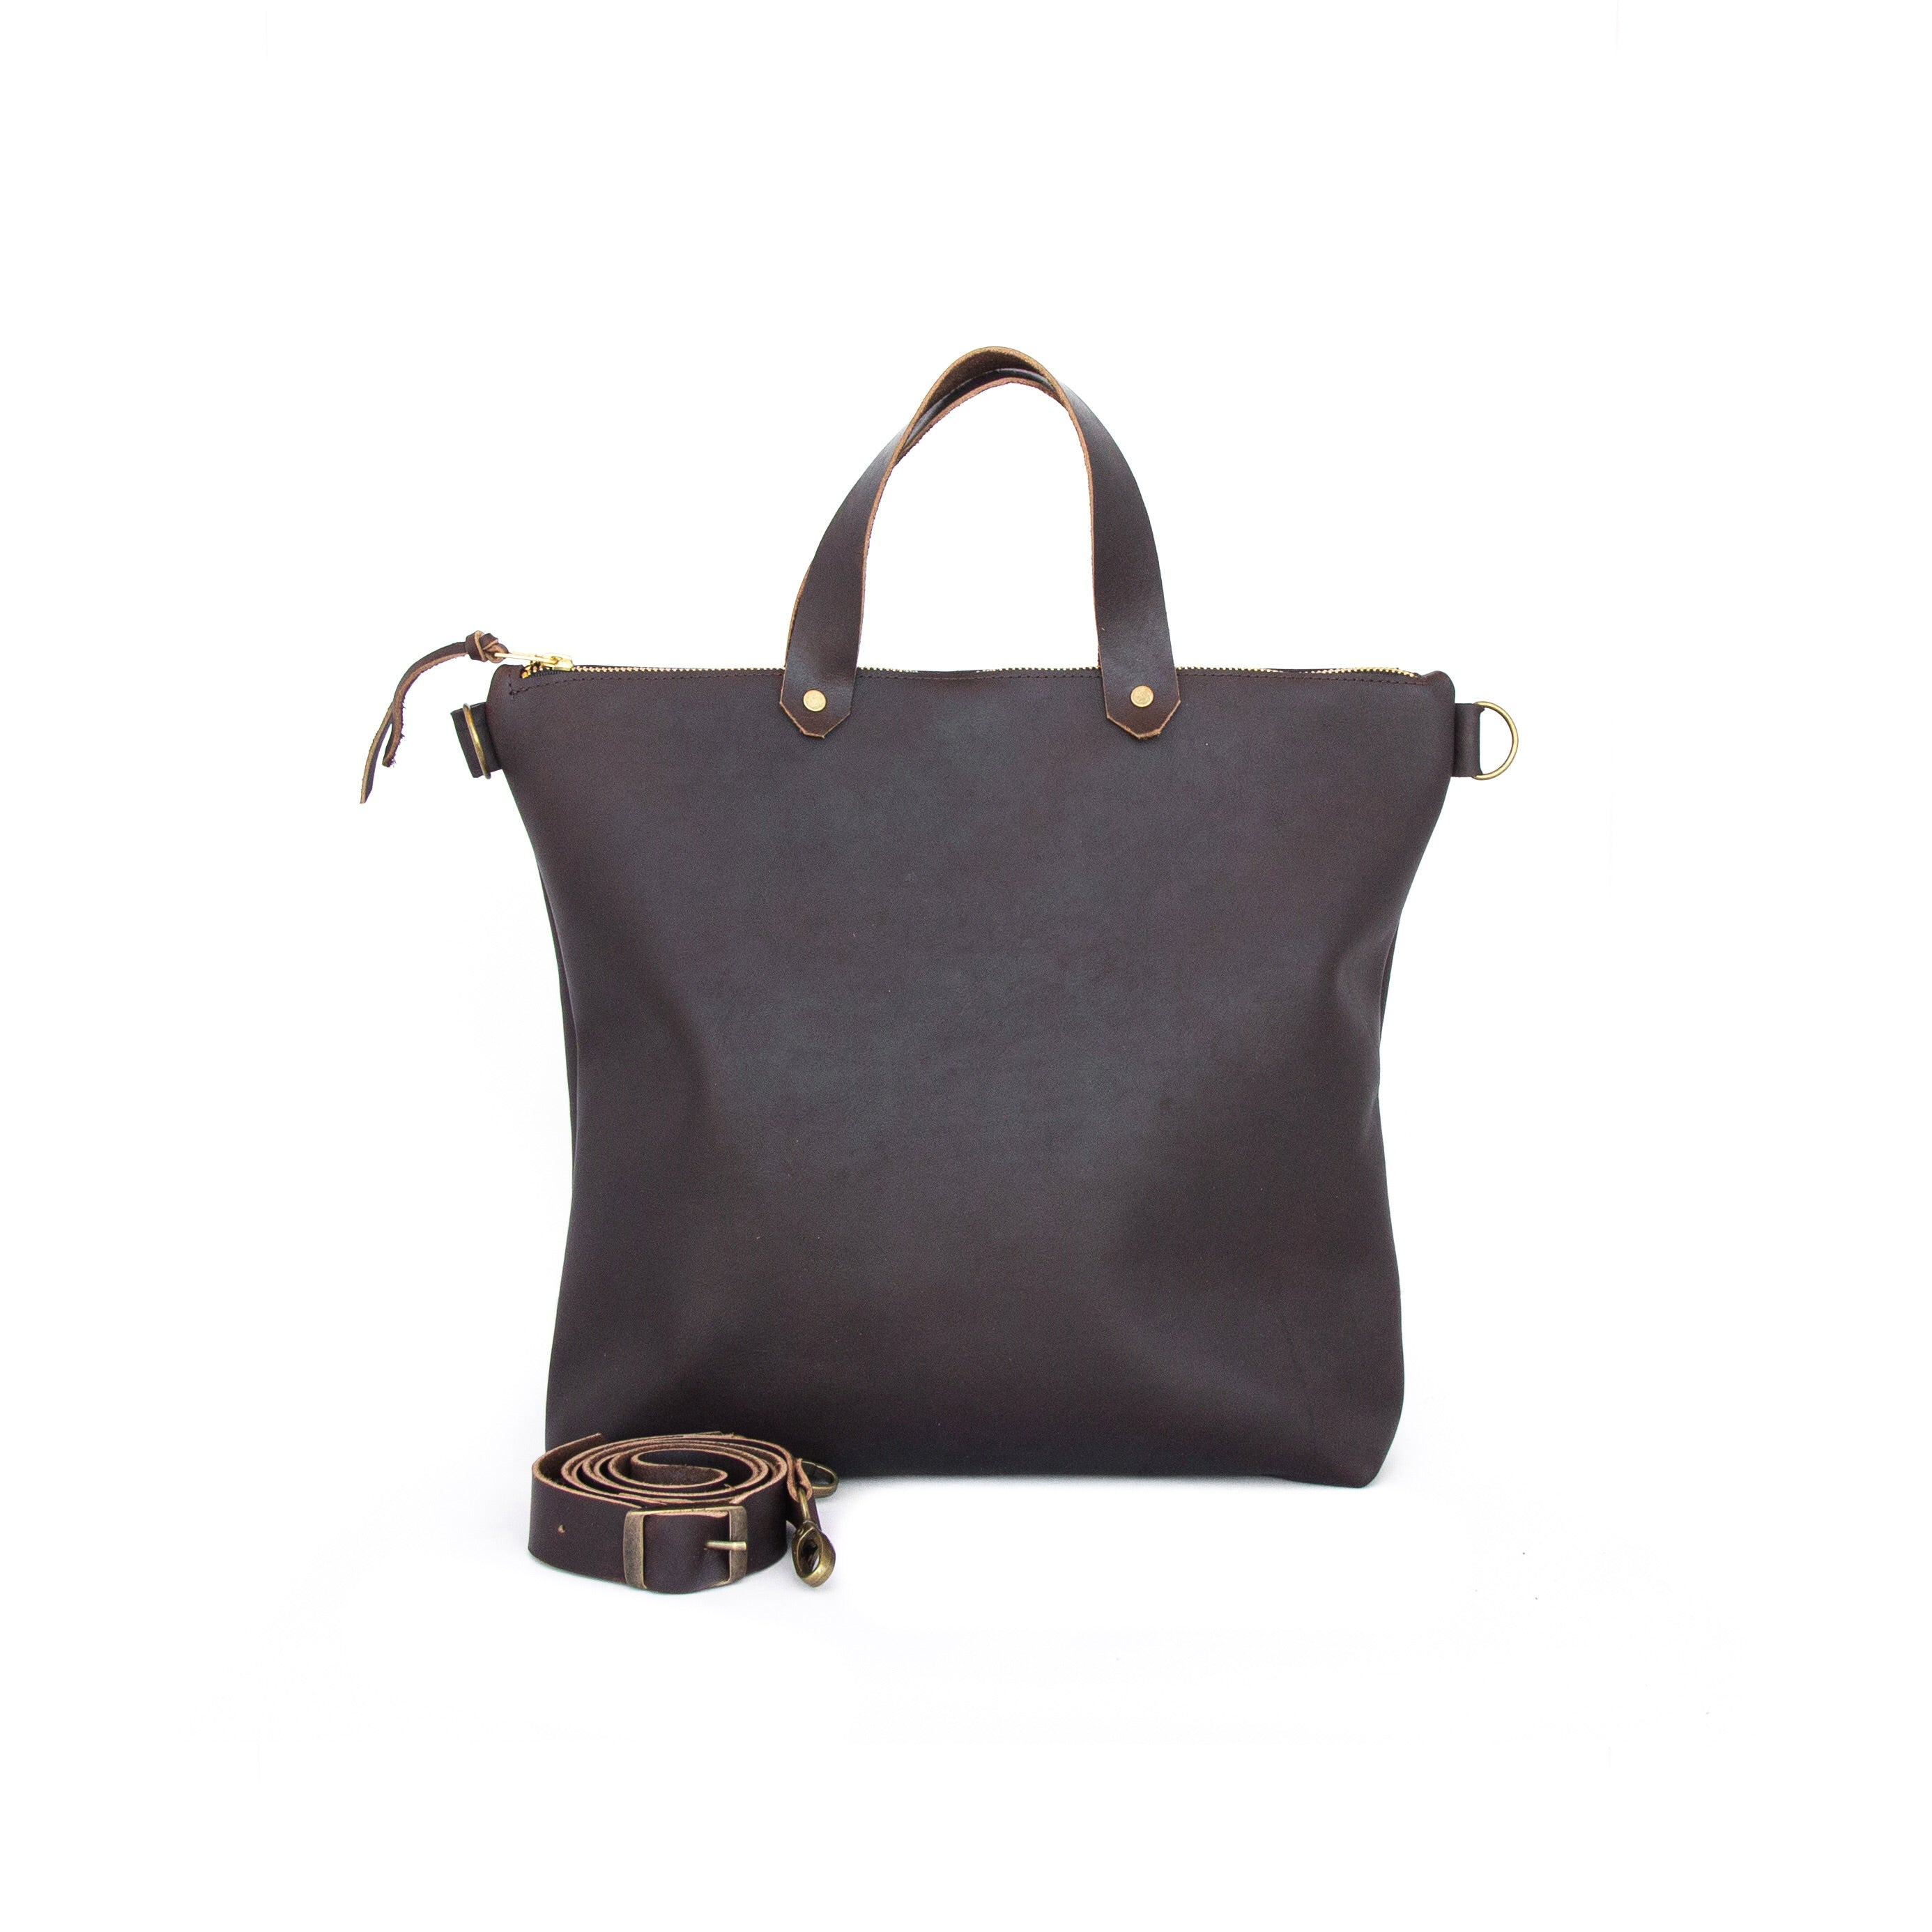 Zip Tote Leather - handcrafted by Market Canvas Leather in Tofino, BC, Canada